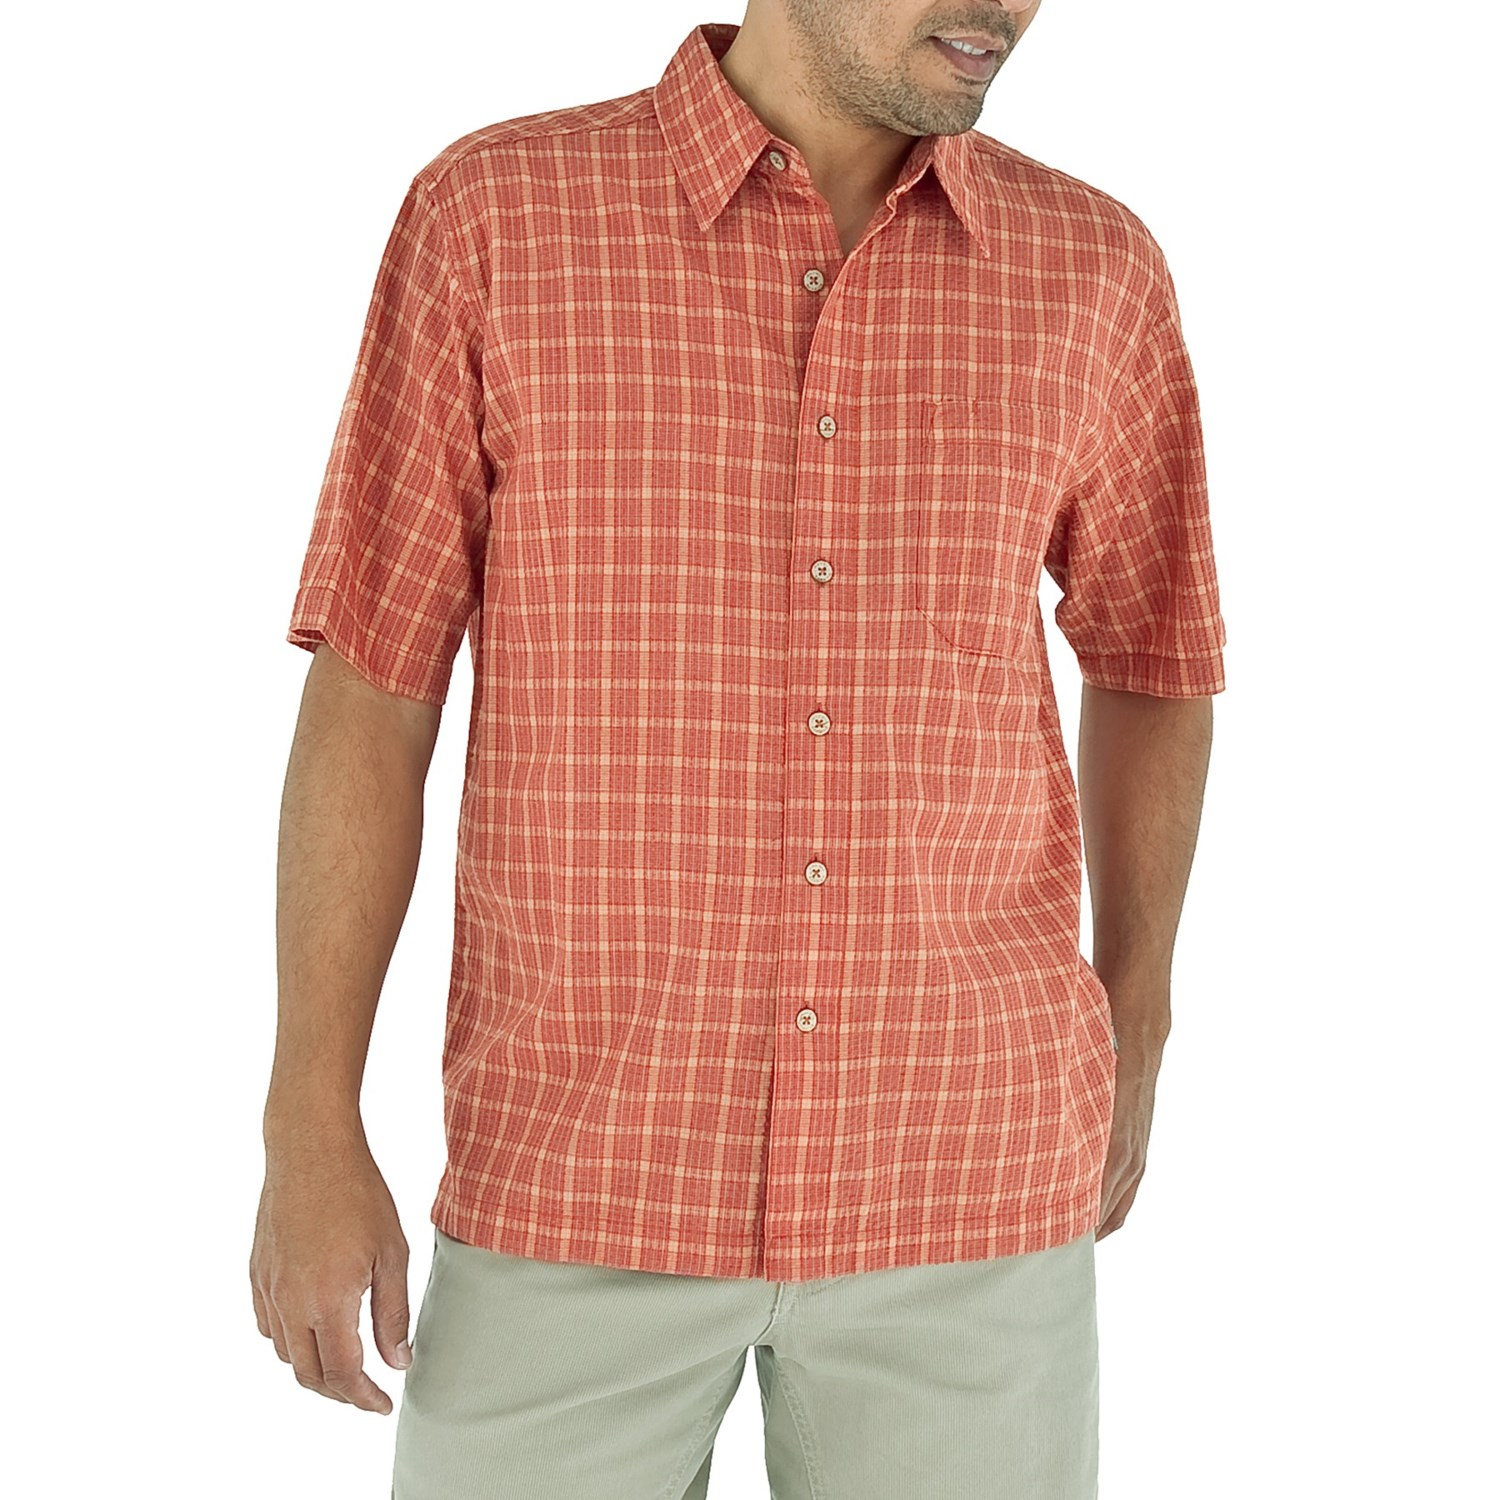 royal robbins salida seersucker shirt short sleeve for ForMens Short Sleeve Seersucker Shirts